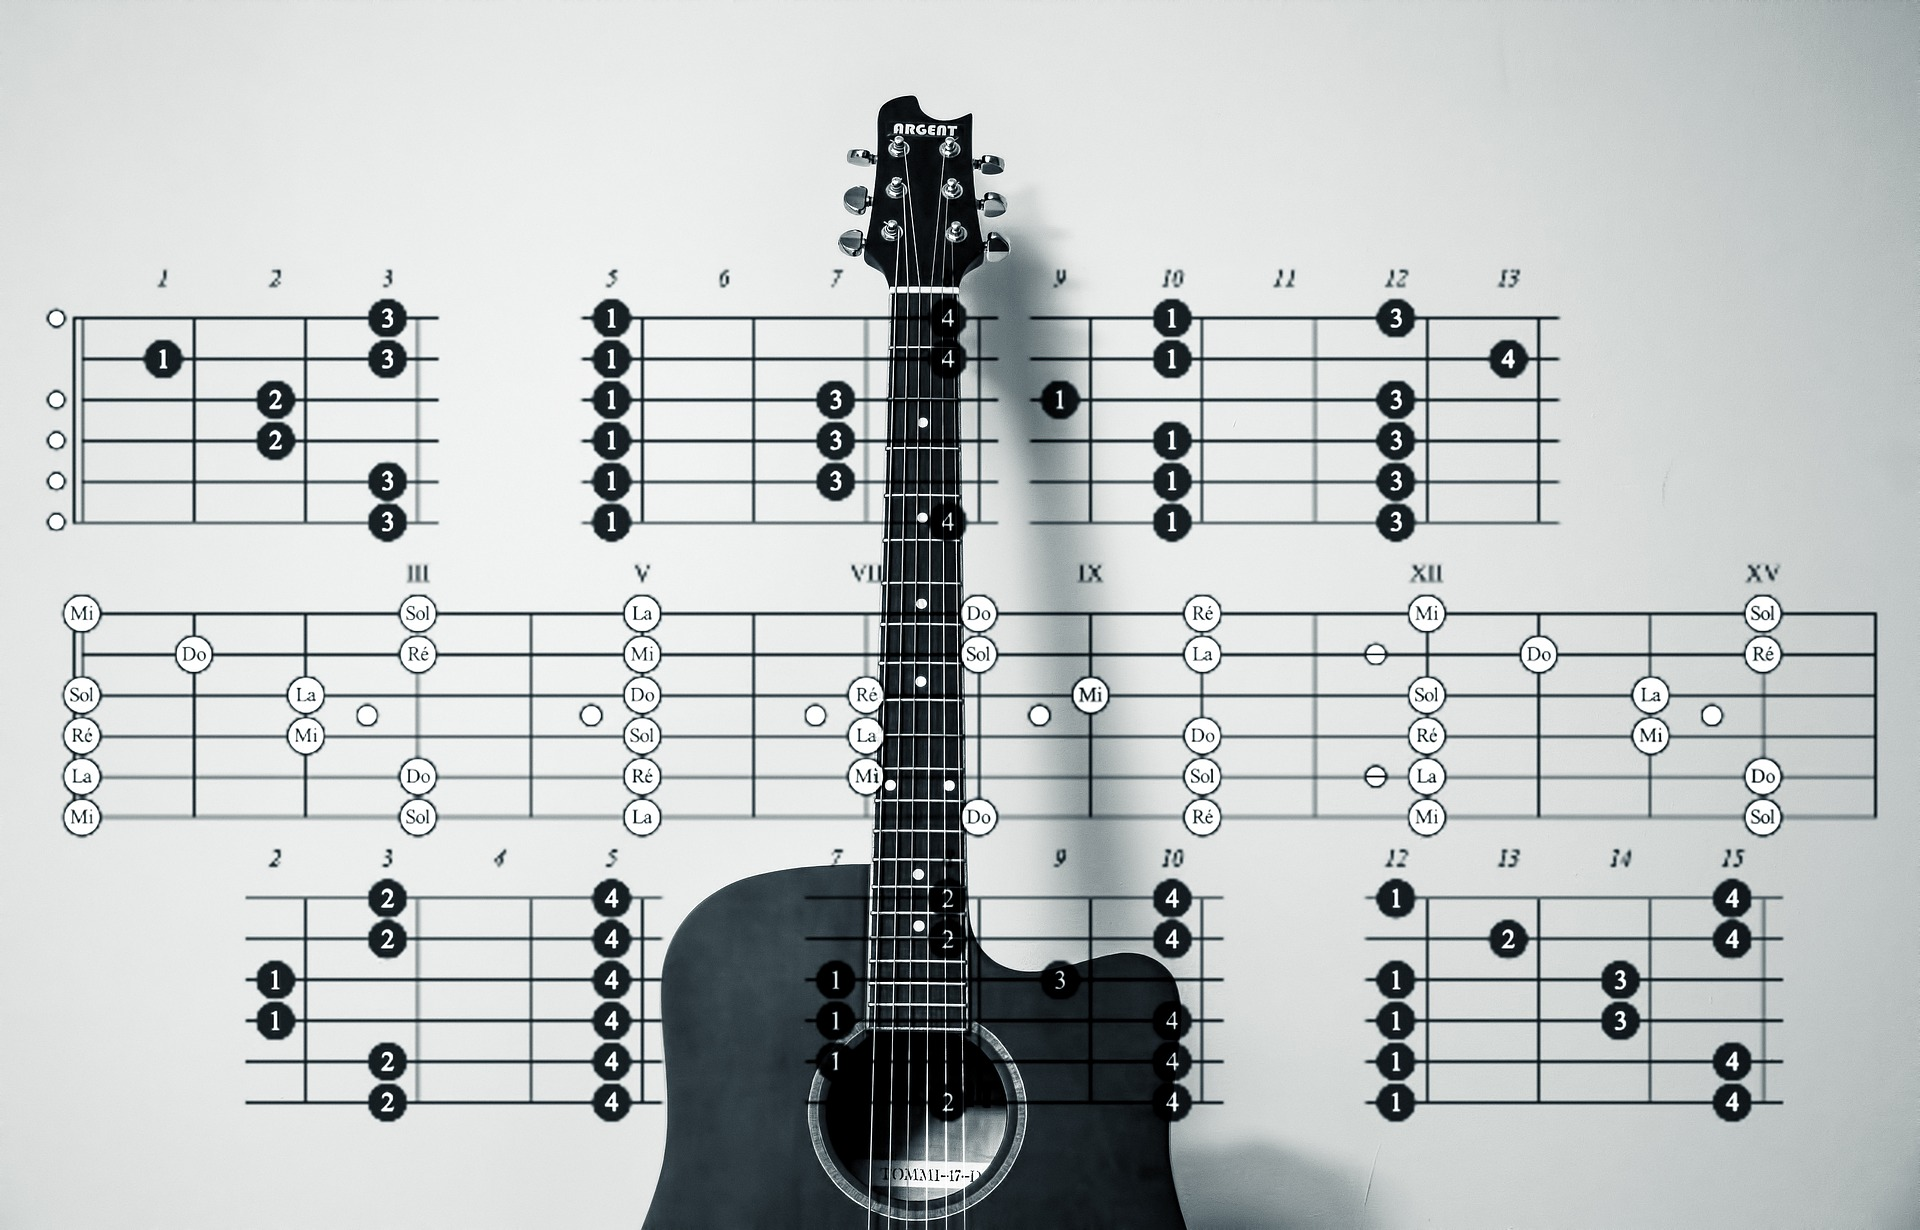 Introduction to scales and chords for guitar uberchord app hexwebz Image collections